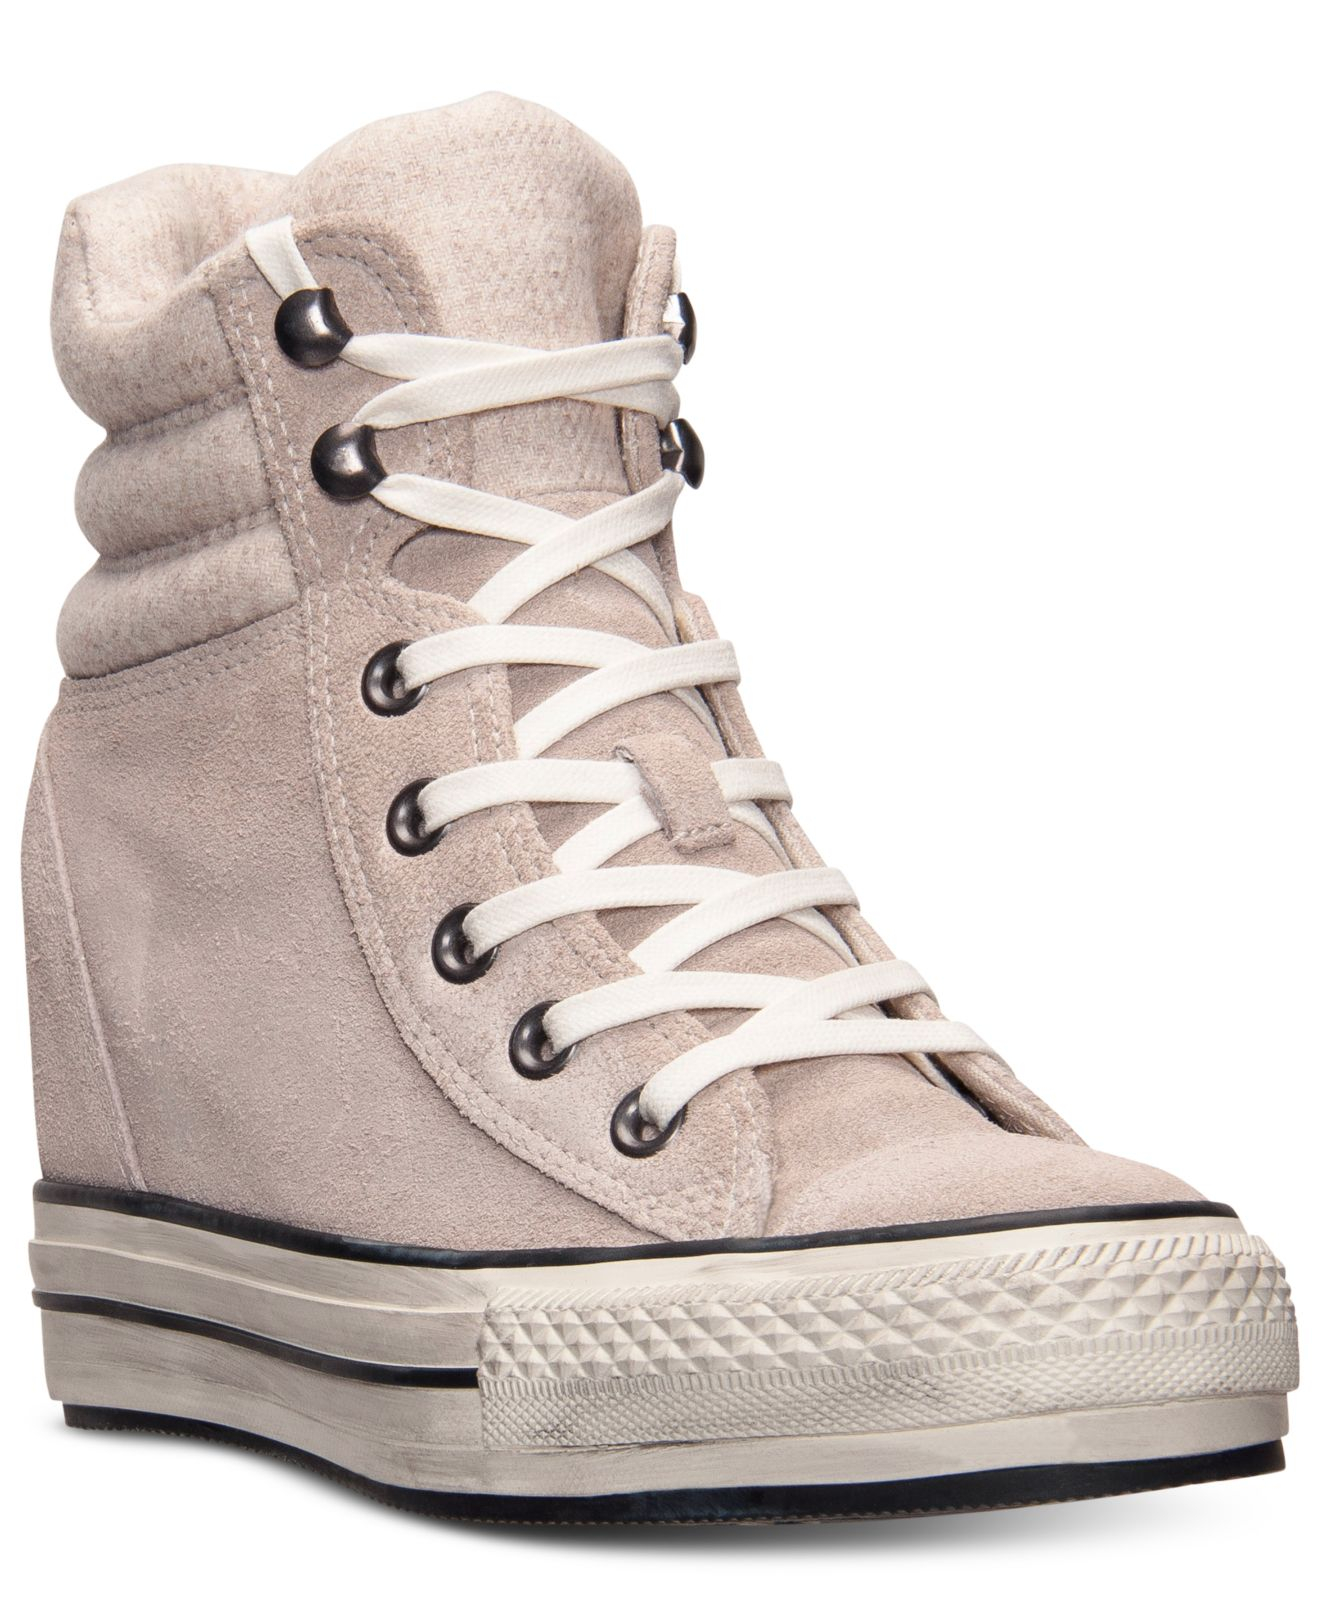 eb8cd9a72008 Converse Women'S Chuck Taylor All Star Platform Plus Hi Casual ...